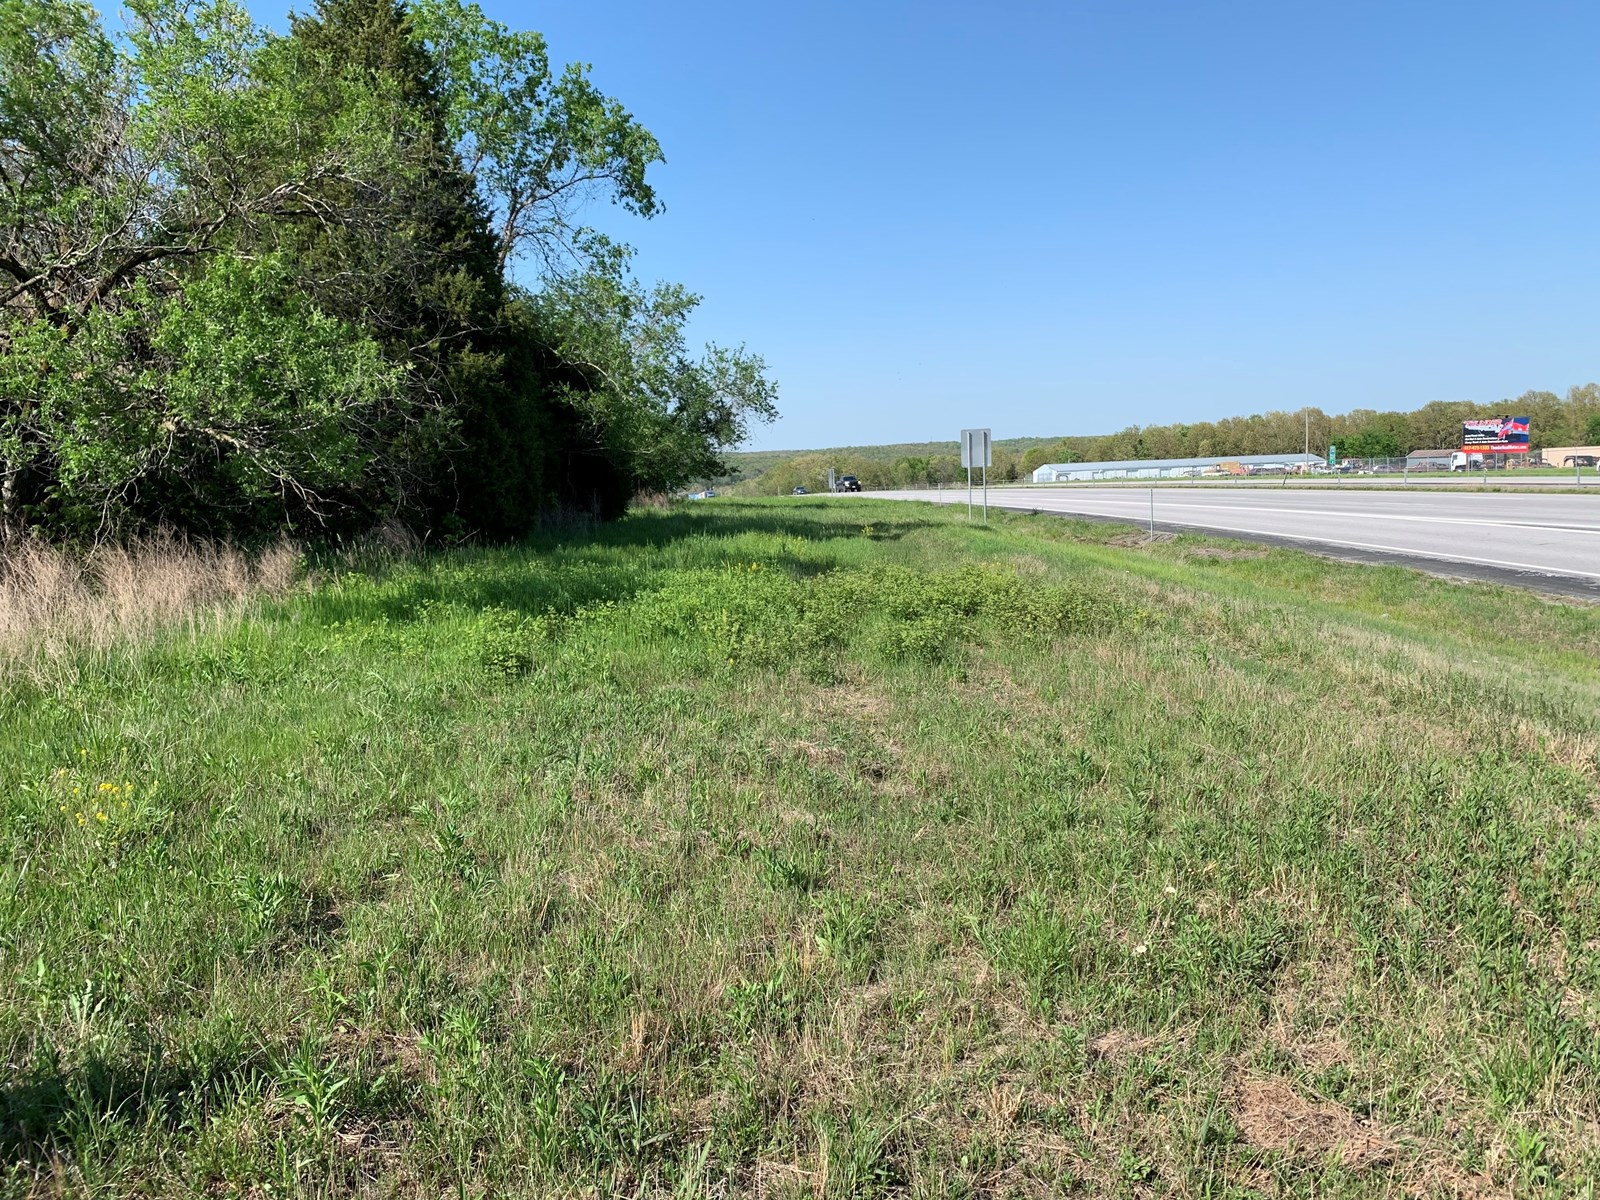 Commercial Land for Sale with I-44 Frontage in Missouri